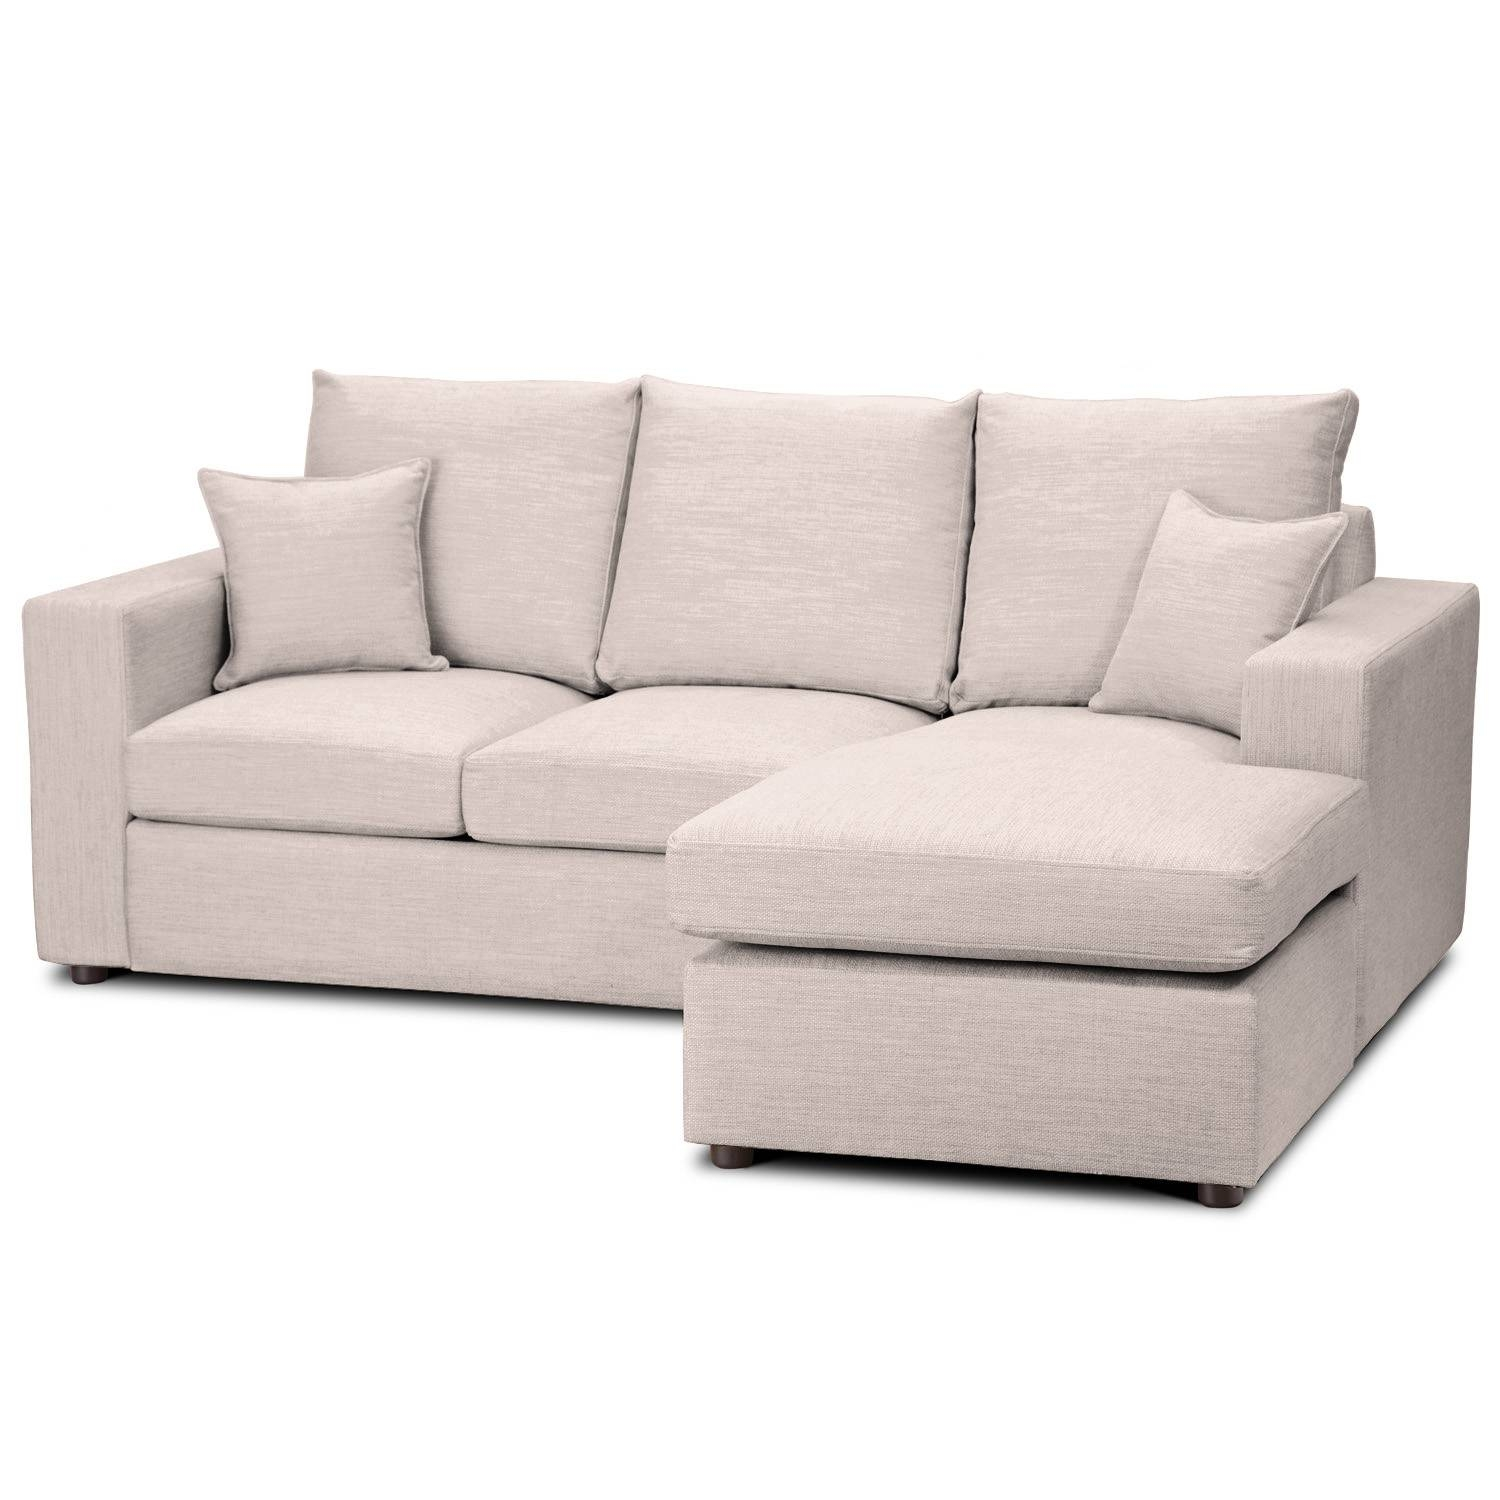 Furniture: Camden Sofa With Classic Style For Your Home throughout 2 Seat Sectional Sofas (Image 14 of 30)